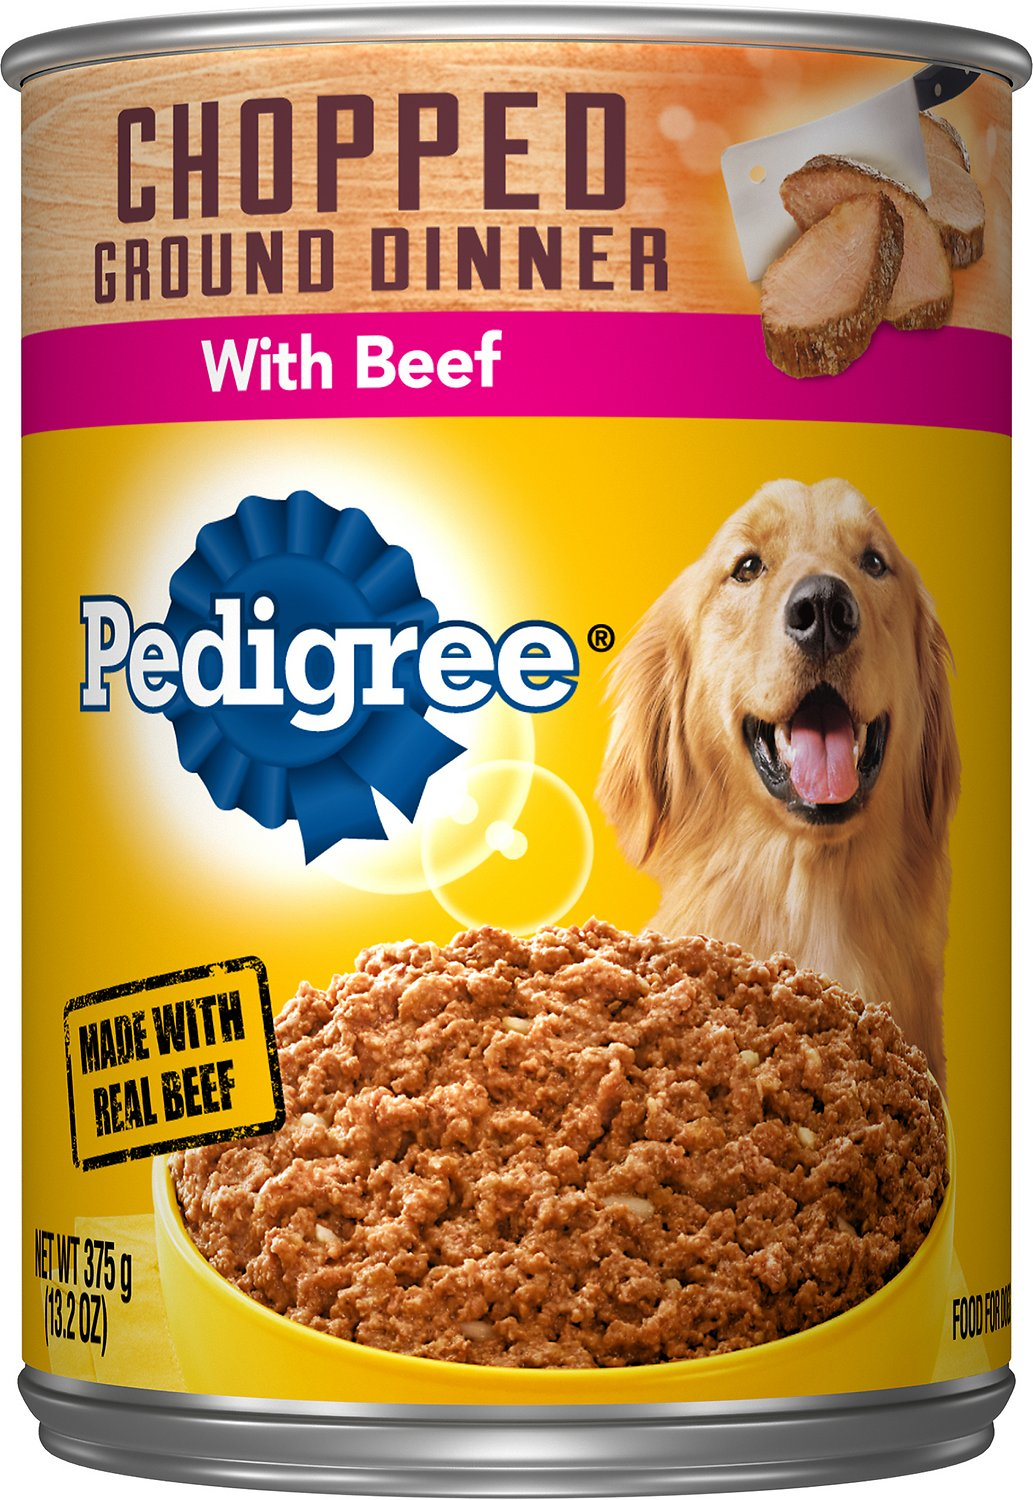 Best Canned Dog Food >> Pedigree Chopped Ground Dinner With Beef Canned Dog Food 13 2 Oz Case Of 12